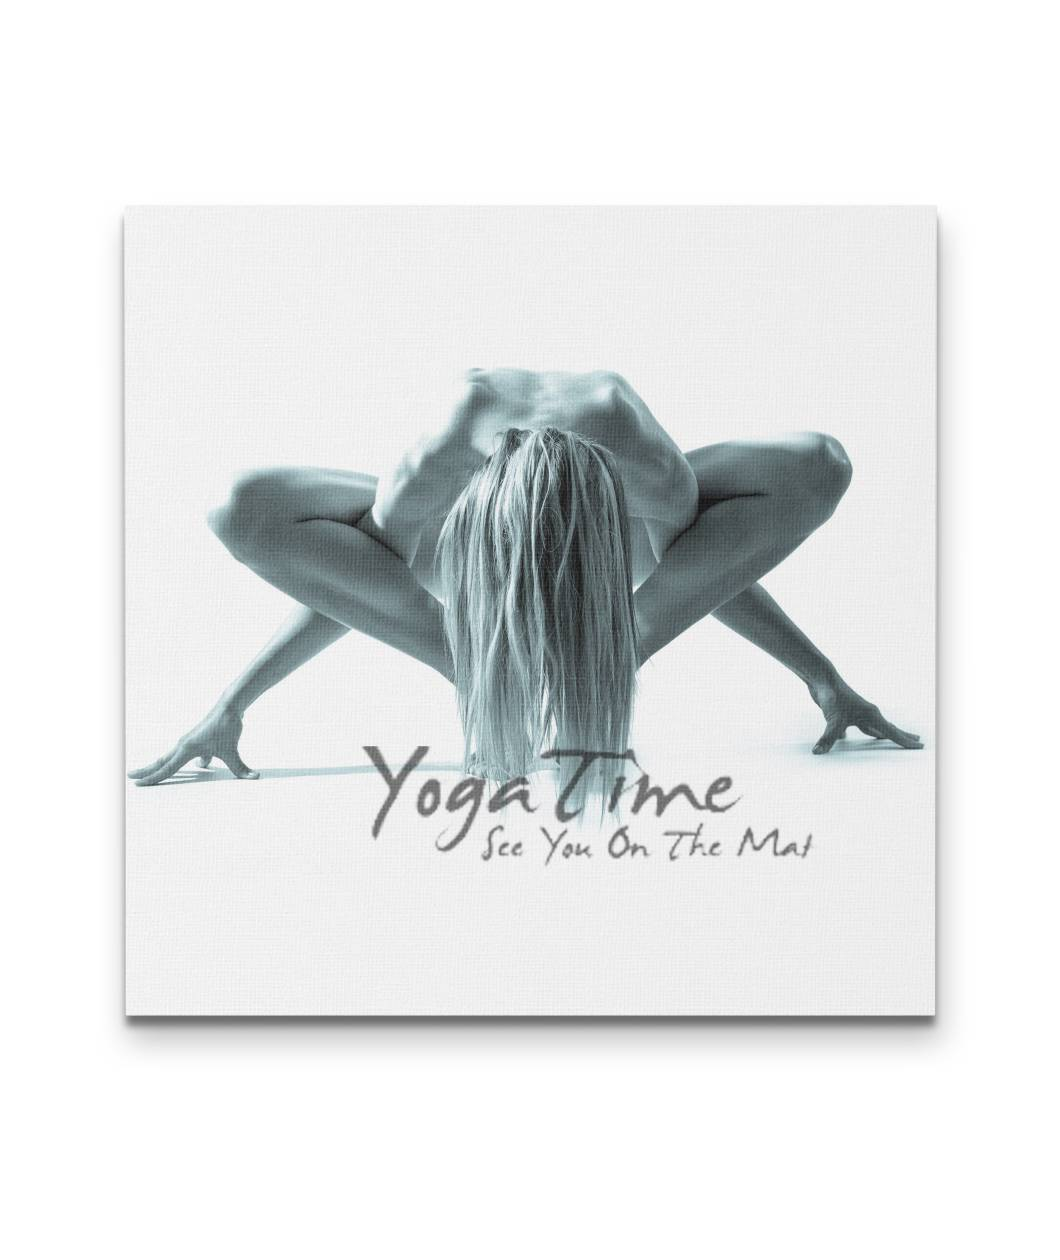 It's Yoga Time Canvas - Square 4 sizes